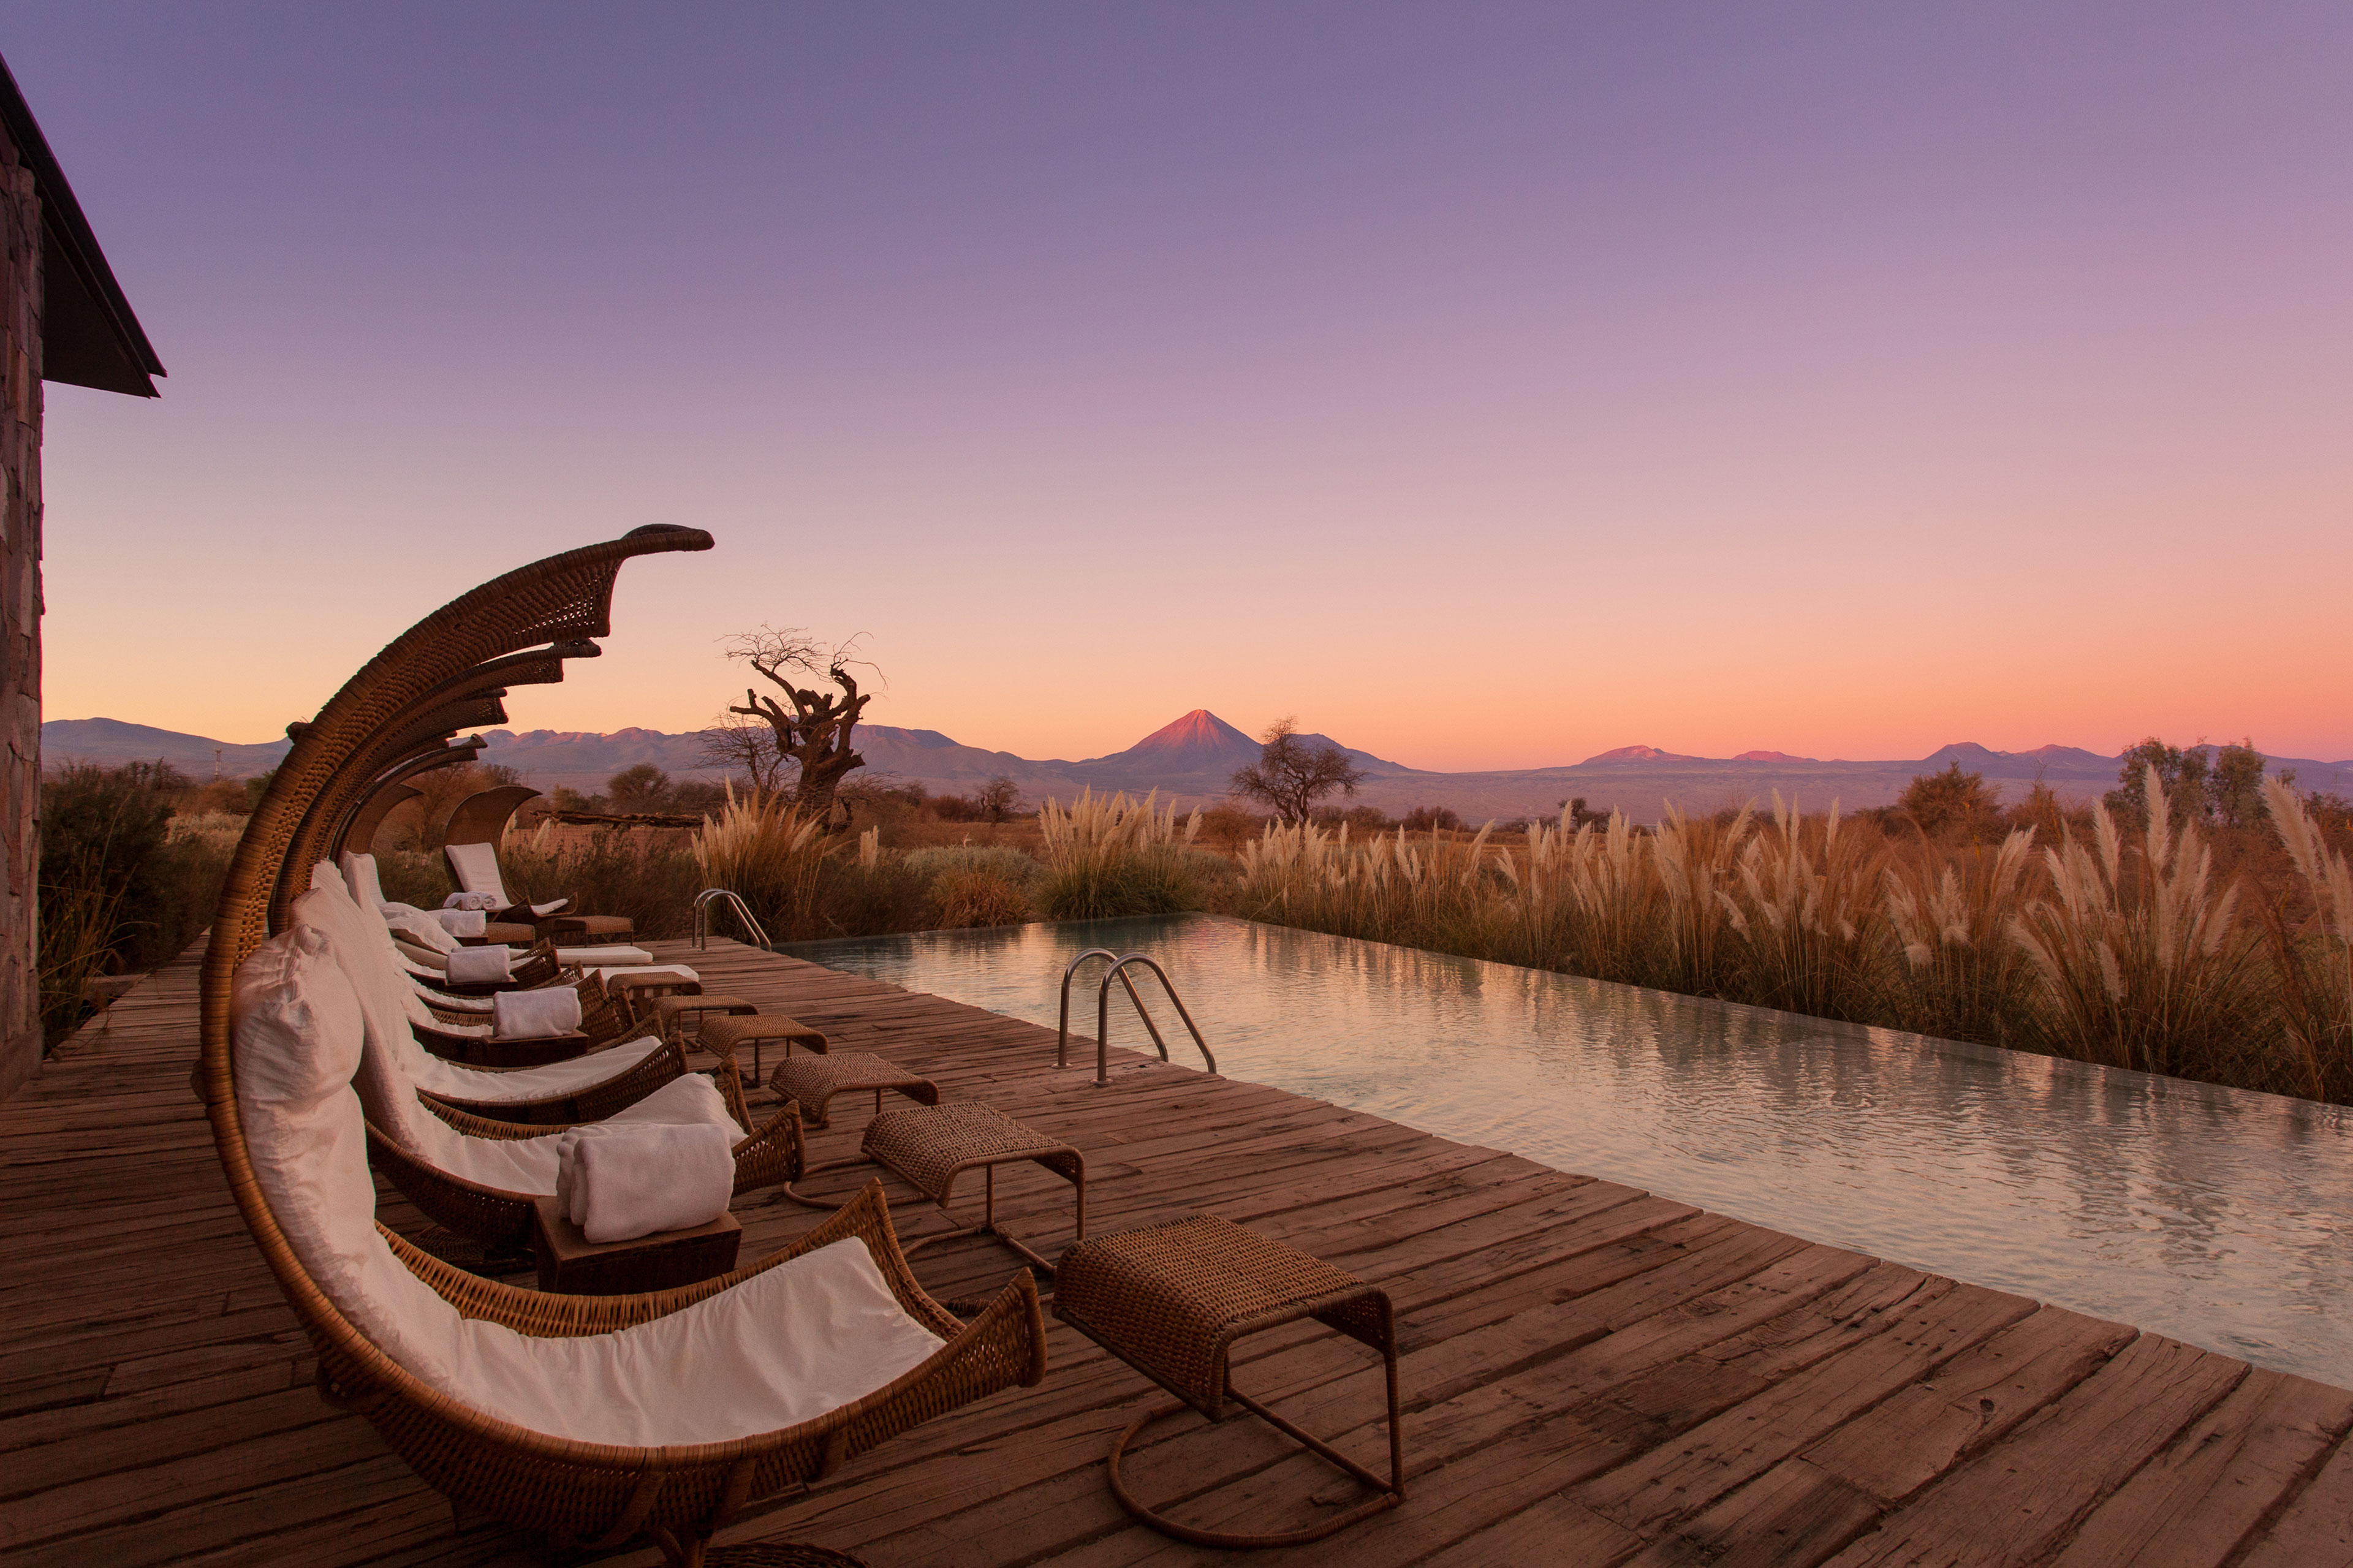 Tierra Atacama Hotel and Spa scooped the prize for Best Pool With a View.